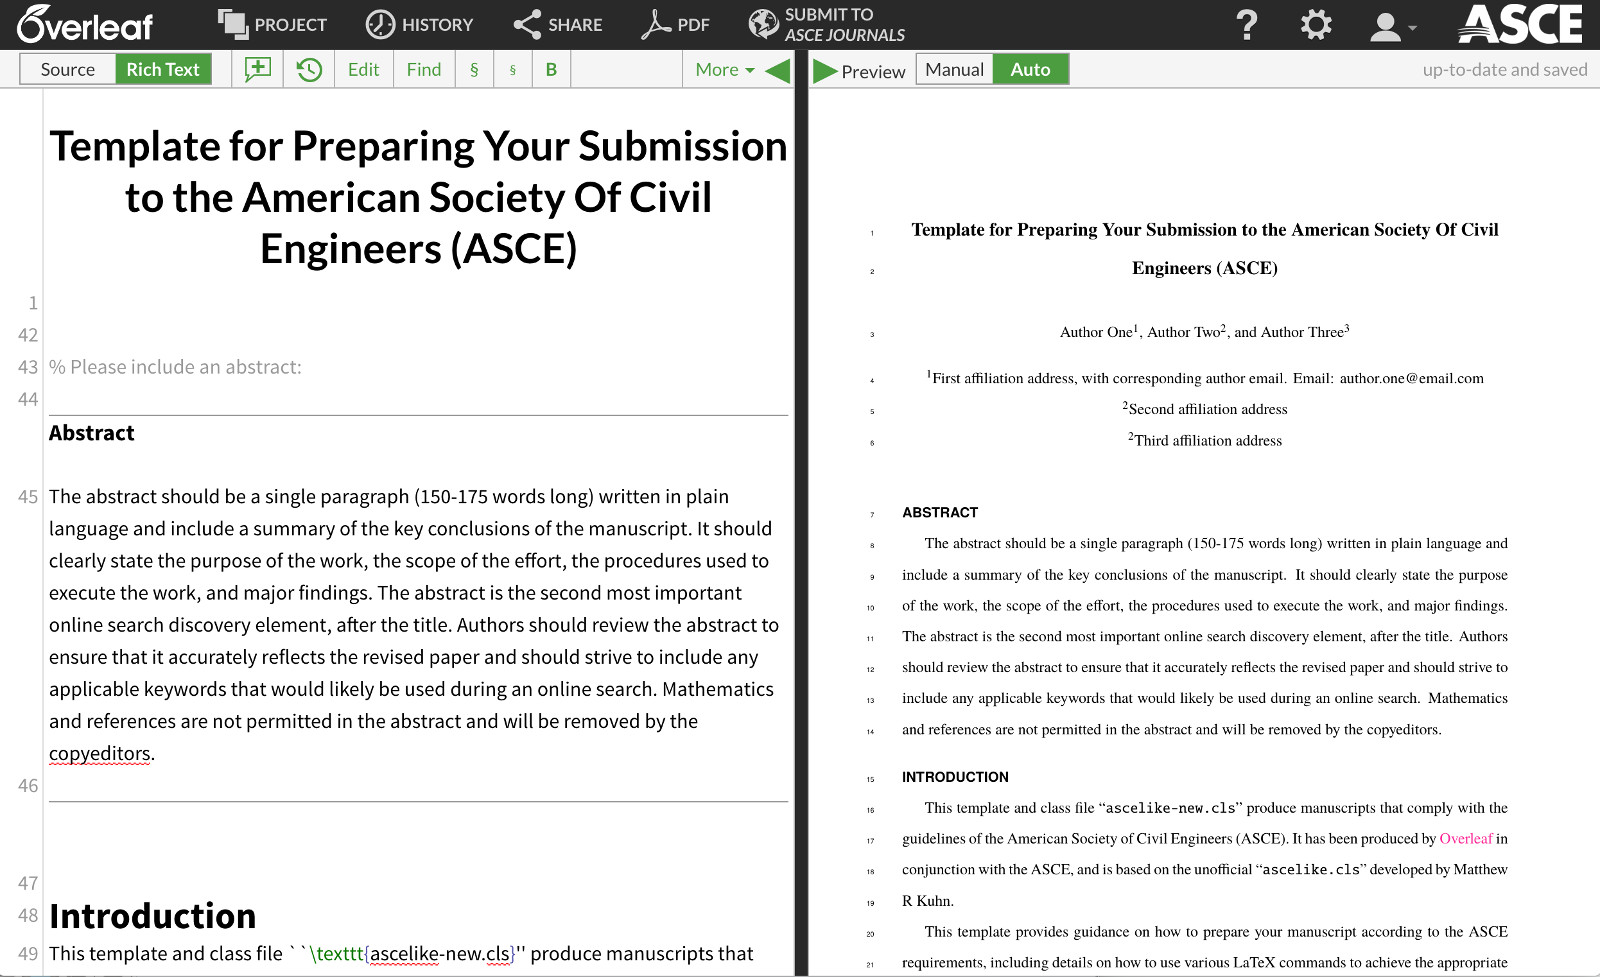 New partnership between ASCE and Overleaf - Overleaf, Editor LaTeX